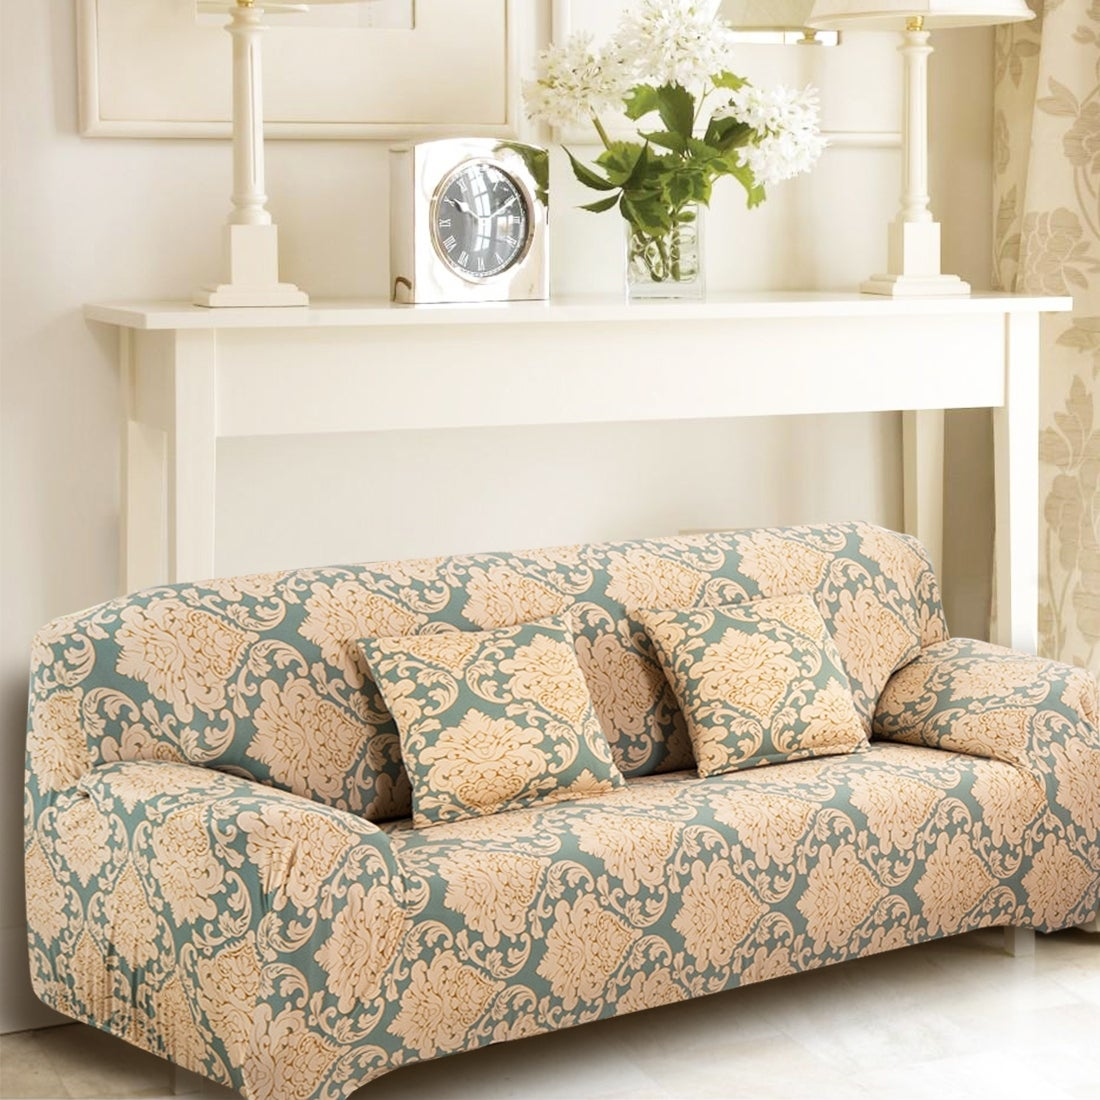 Shop Unique Bargains Flower Pattern Stretch Pattern 16 Loveseat Slipcovers    On Sale   Free Shipping On Orders Over $45   Overstock.com   16633354